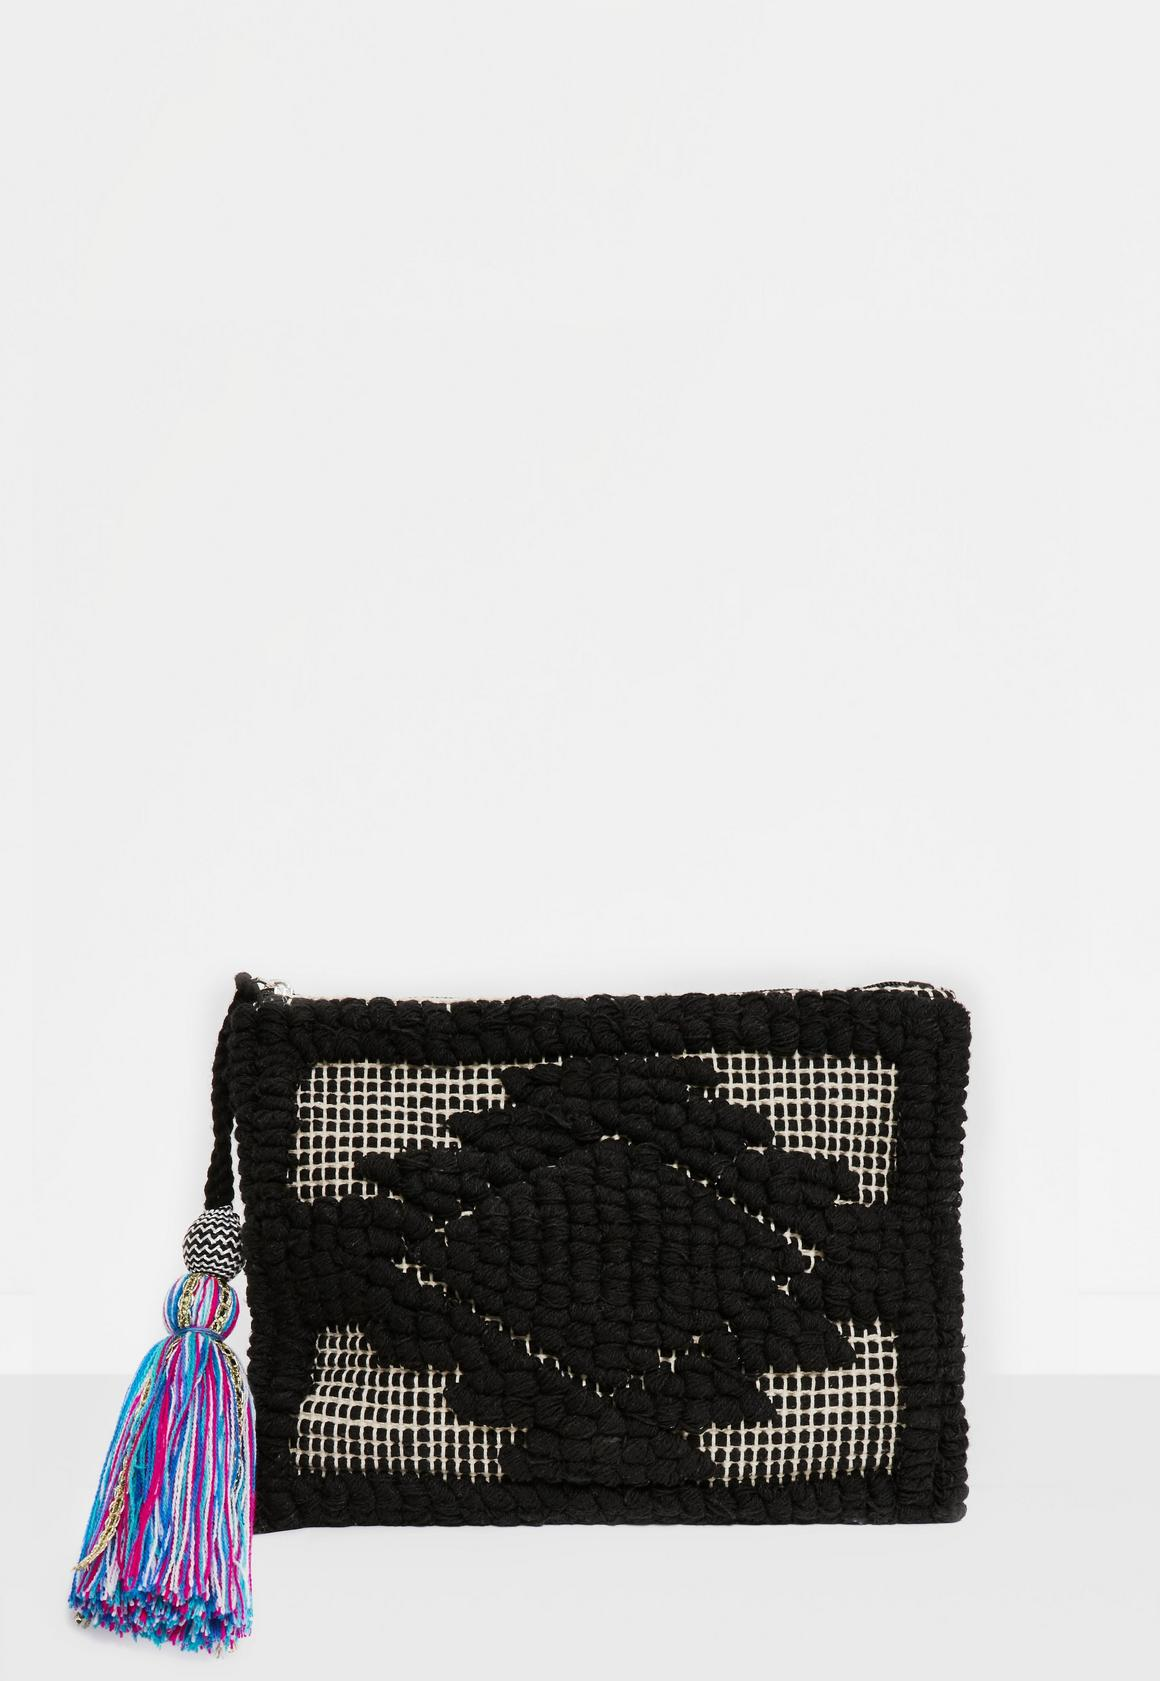 Clutch Bags - Black, White & Khaki | Missguided